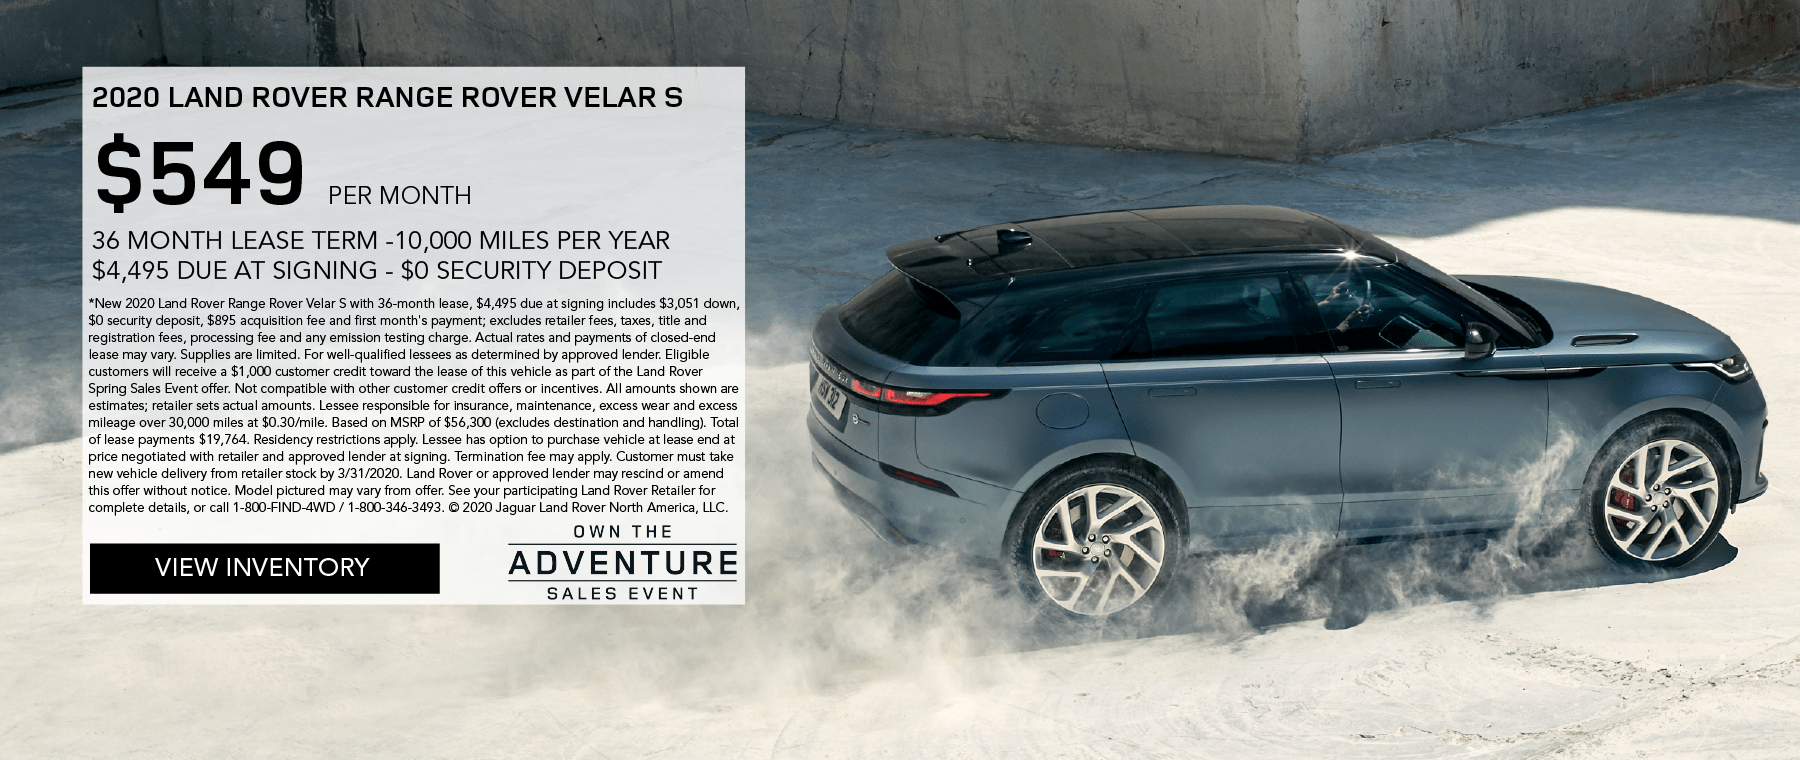 2020 RANGE ROVER VELAR S. $549 PER MONTH. 36 MONTH LEASE TERM. $4,495 CASH DUE AT SIGNING. INCLUDES $1,000 CUSTOMER CREDIT. $0 SECURITY DEPOSIT. 10,000 MILES PER YEAR. OFFER ENDS 3/31/2020. OWN THE ADVENTURE SALES EVENT. VIEW INVENTORY. BLUE RANGE ROVER VELAR DRIVING DOWN CONCRETE PATH KICKING UP DUST.